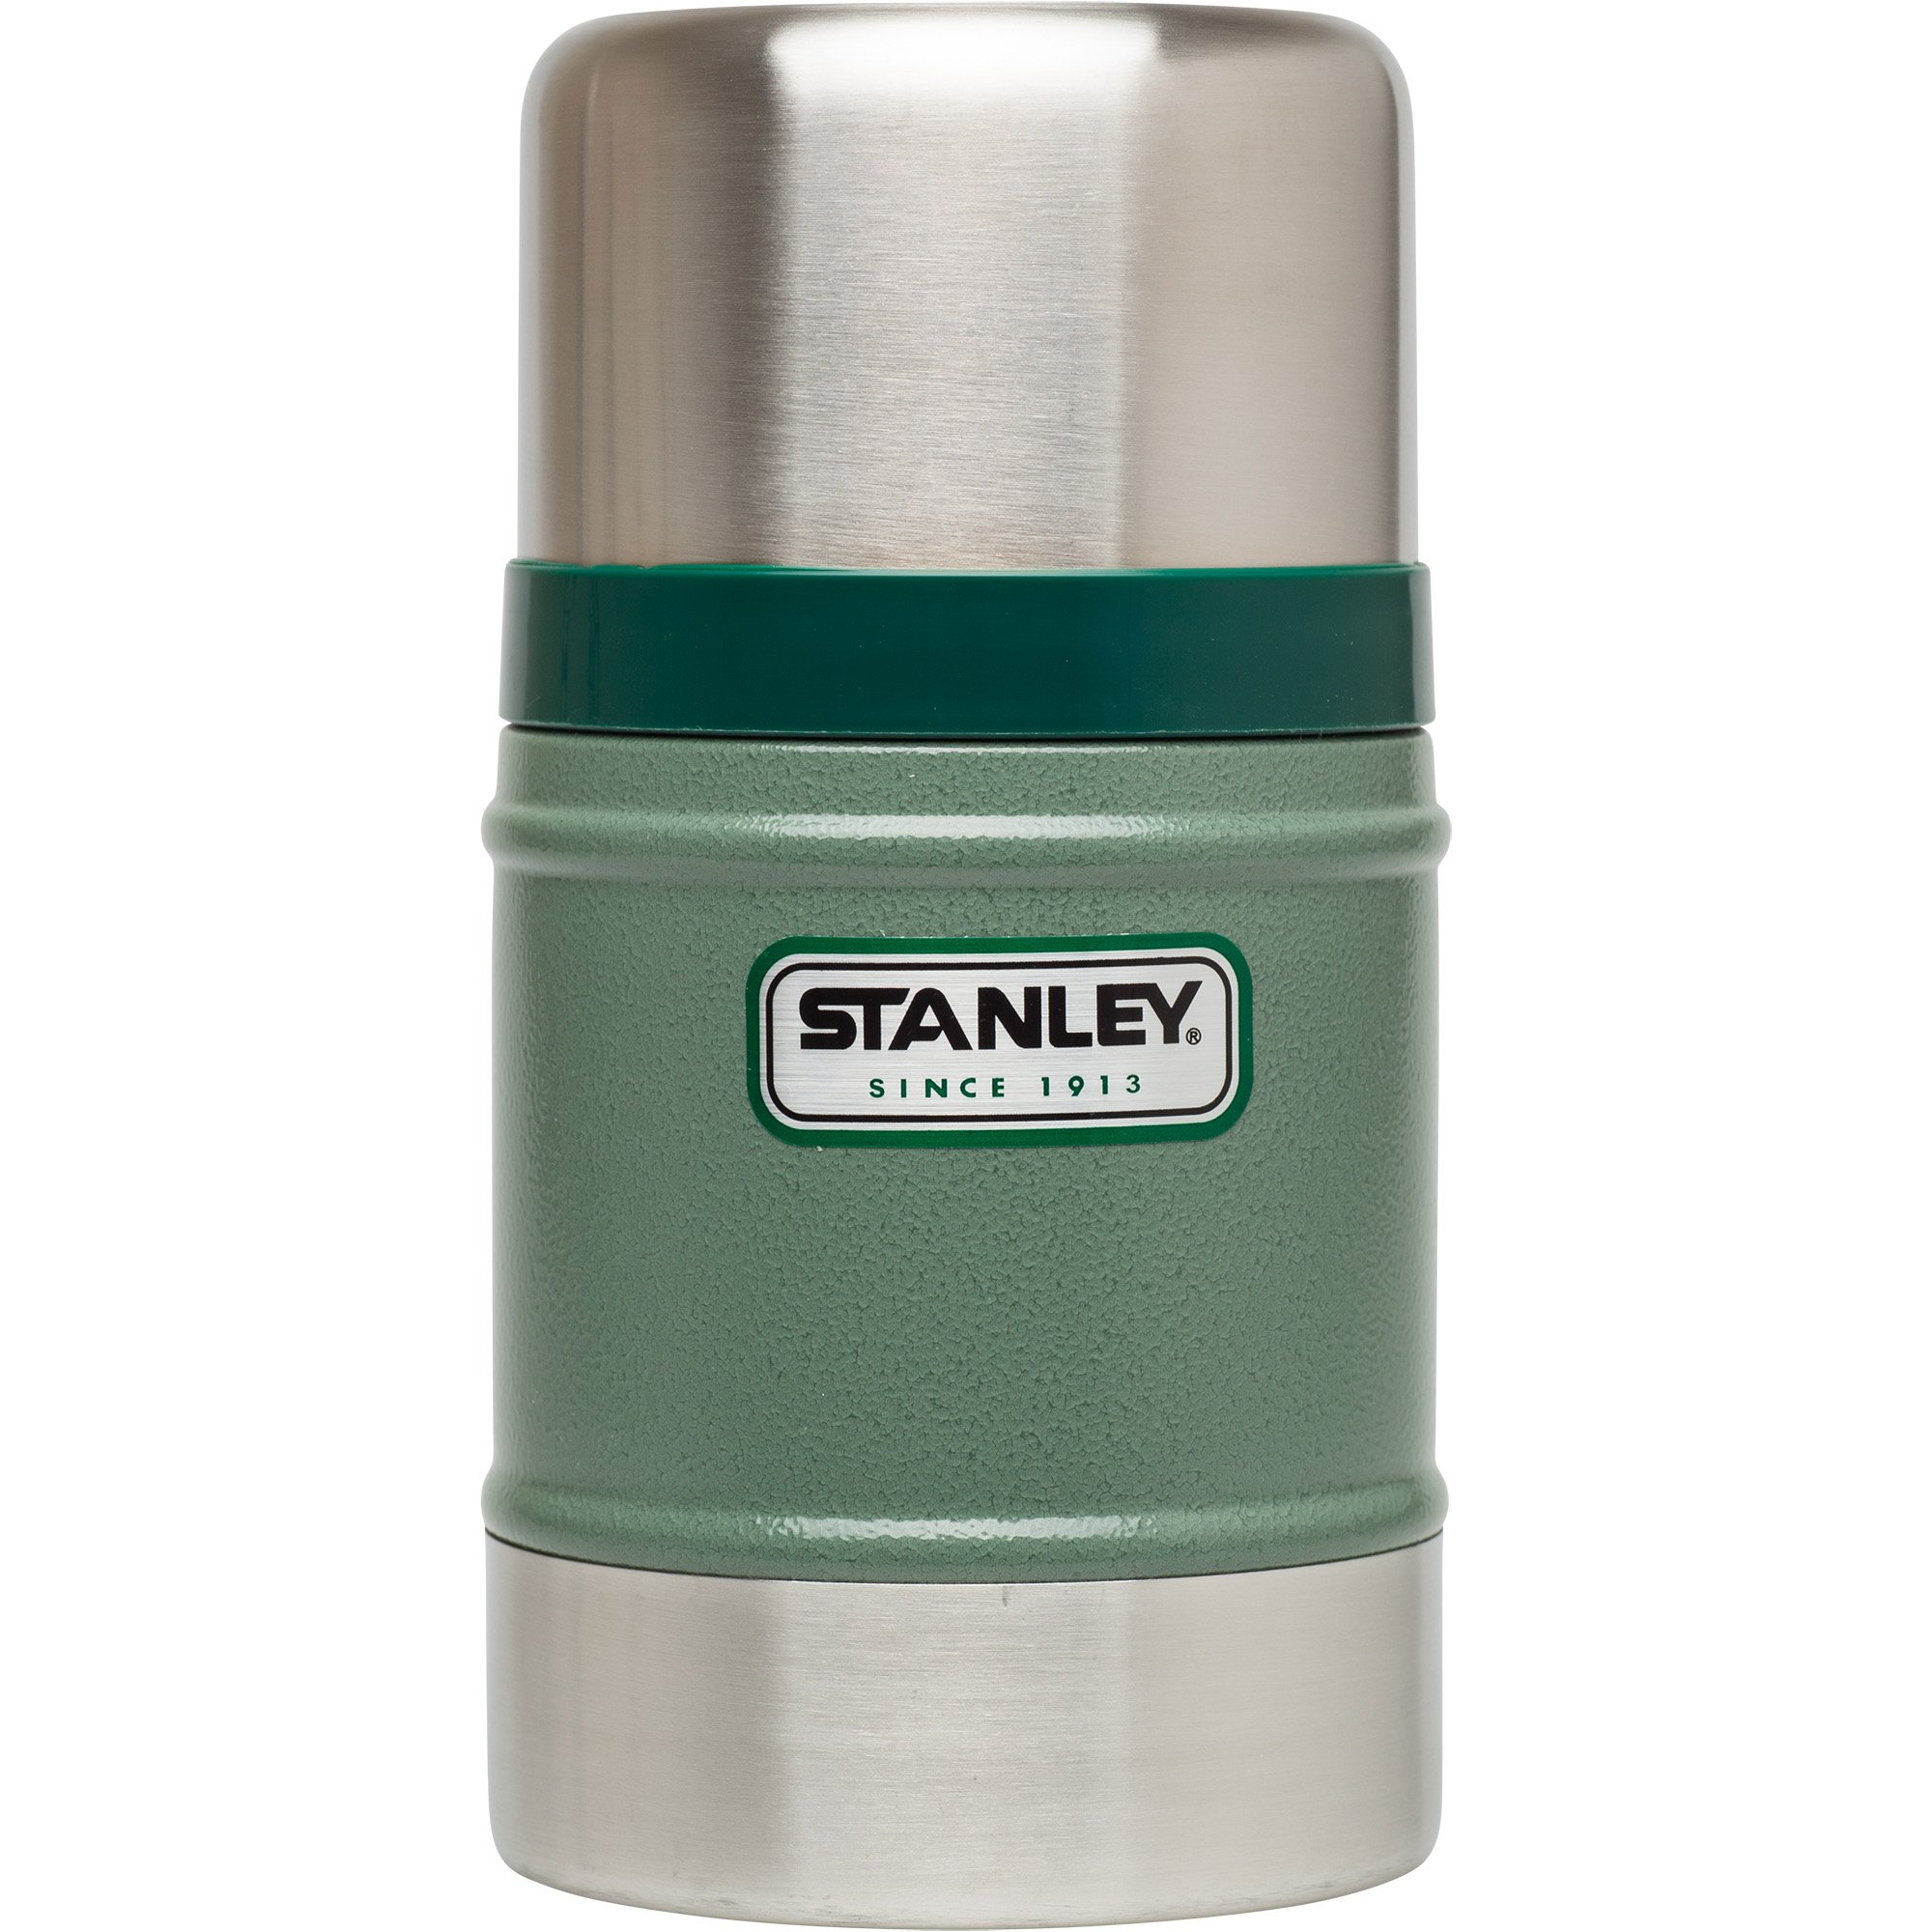 Stanley Classic - Botella termo, 0.5L, color verde product image